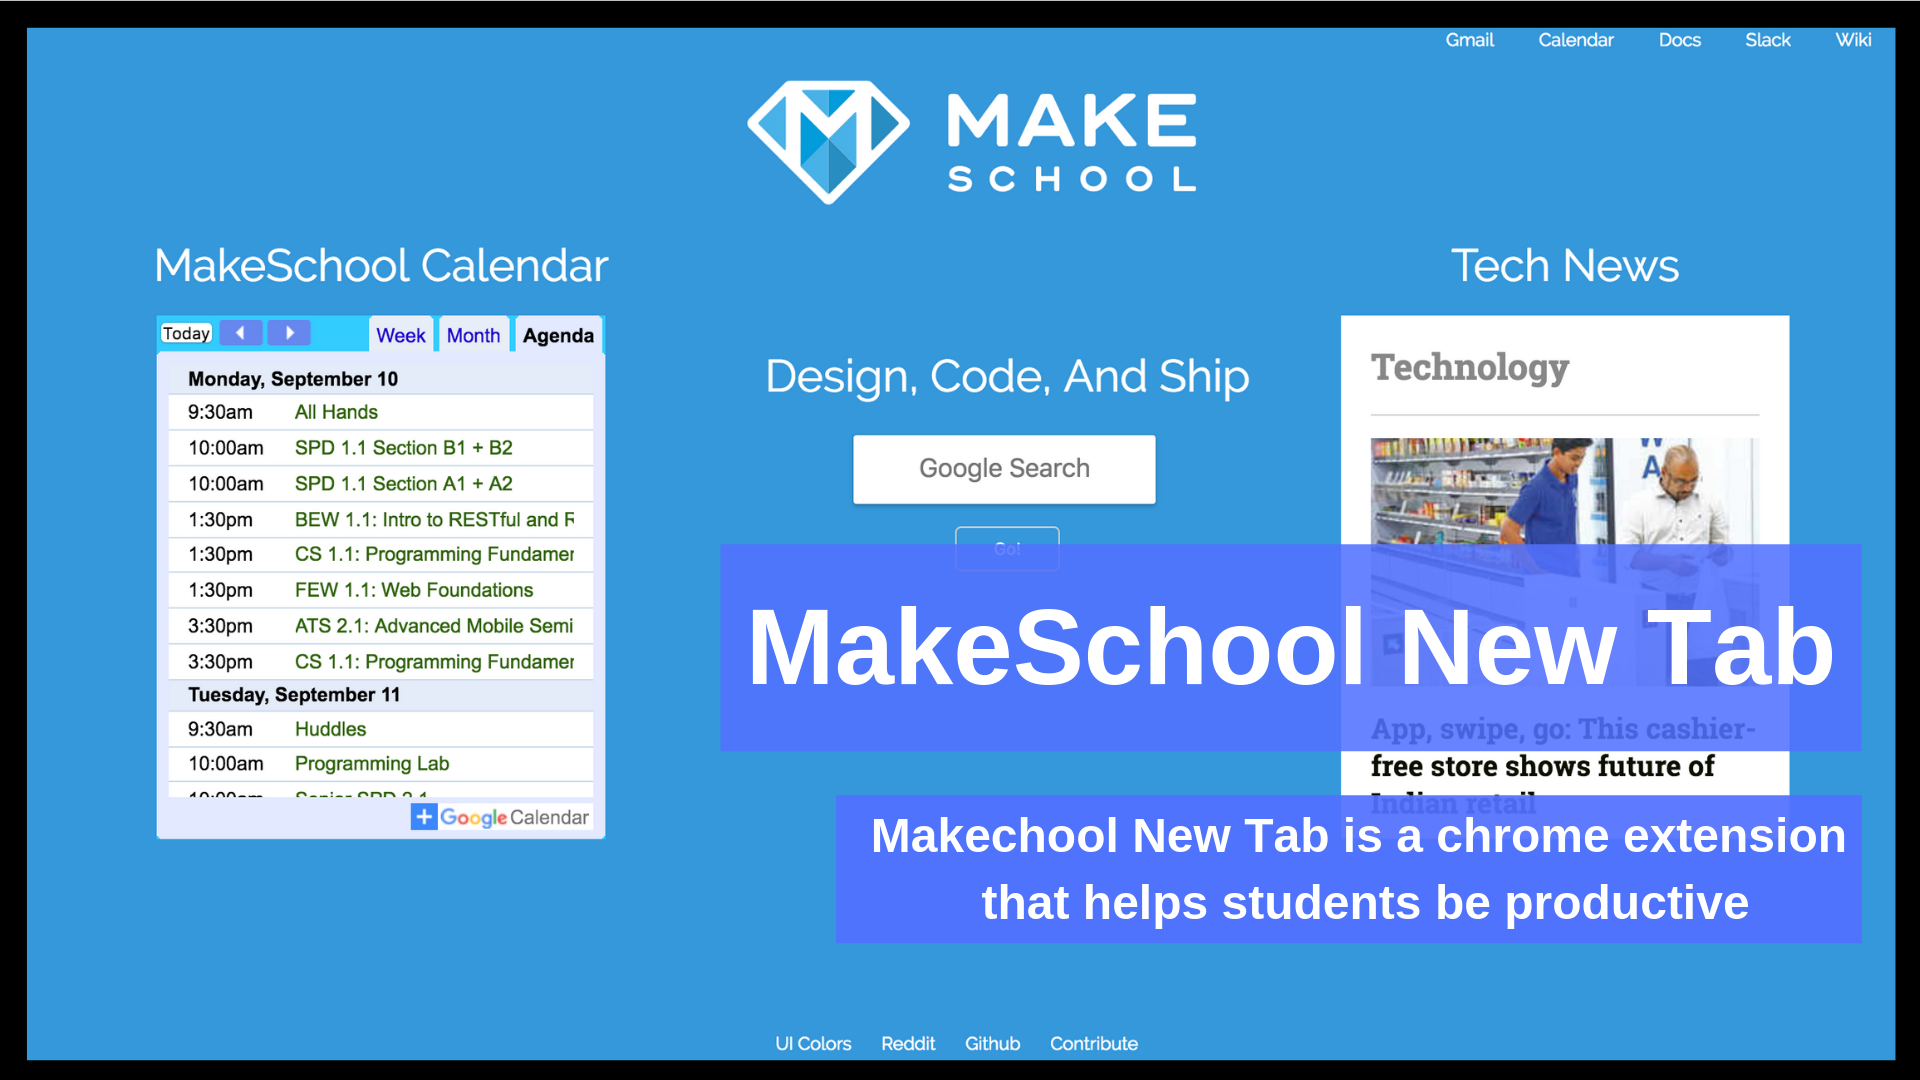 Joe Rezendes - Makeschool